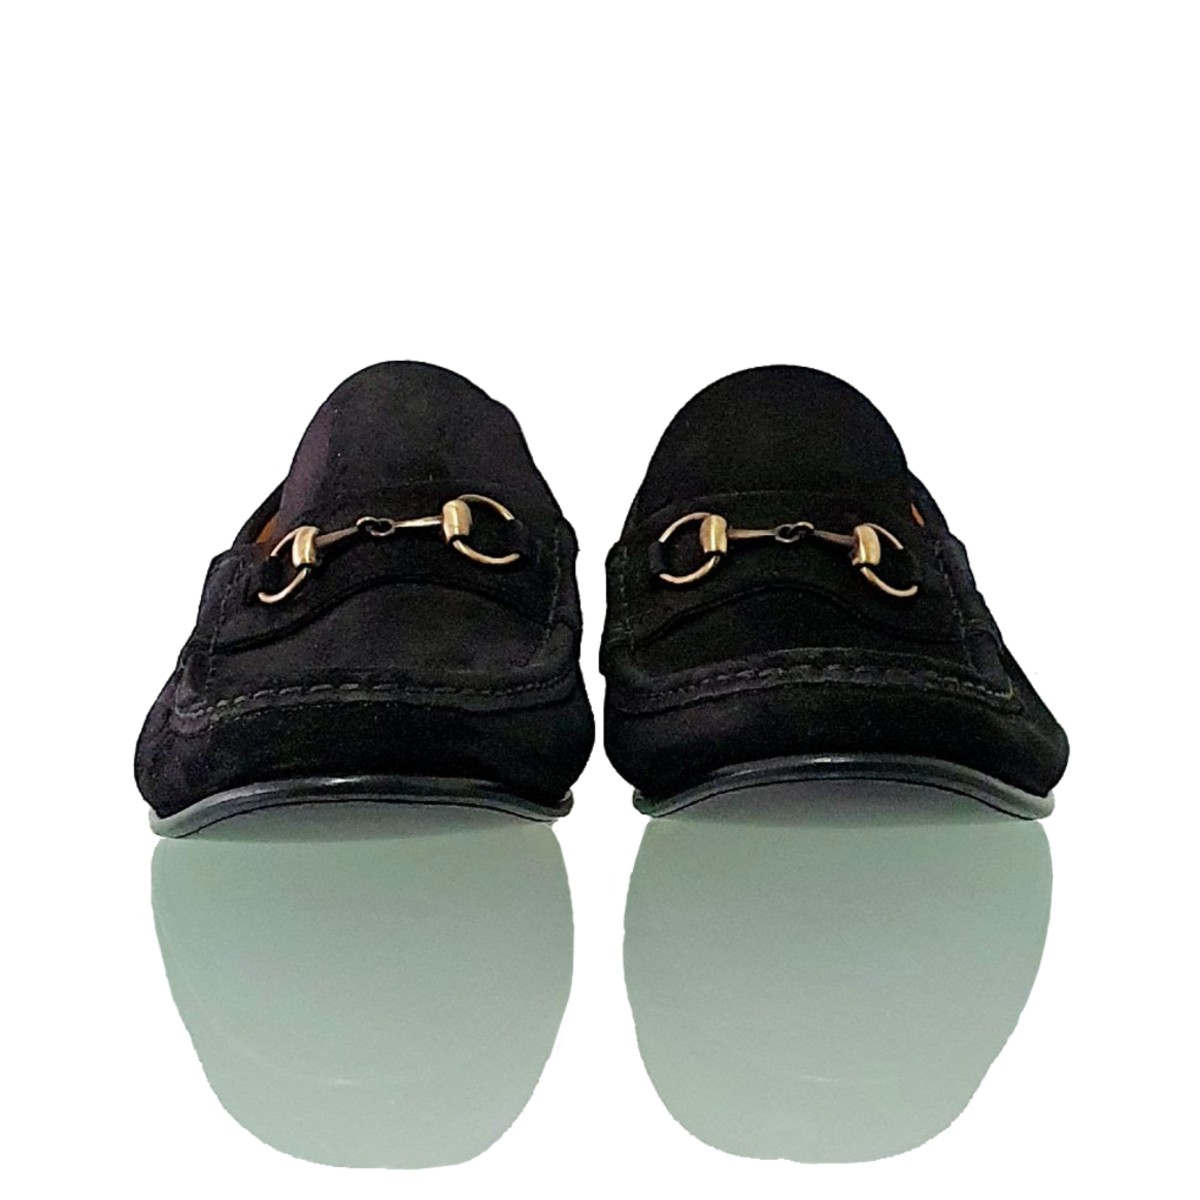 DANDY ICONIC LOAFERS